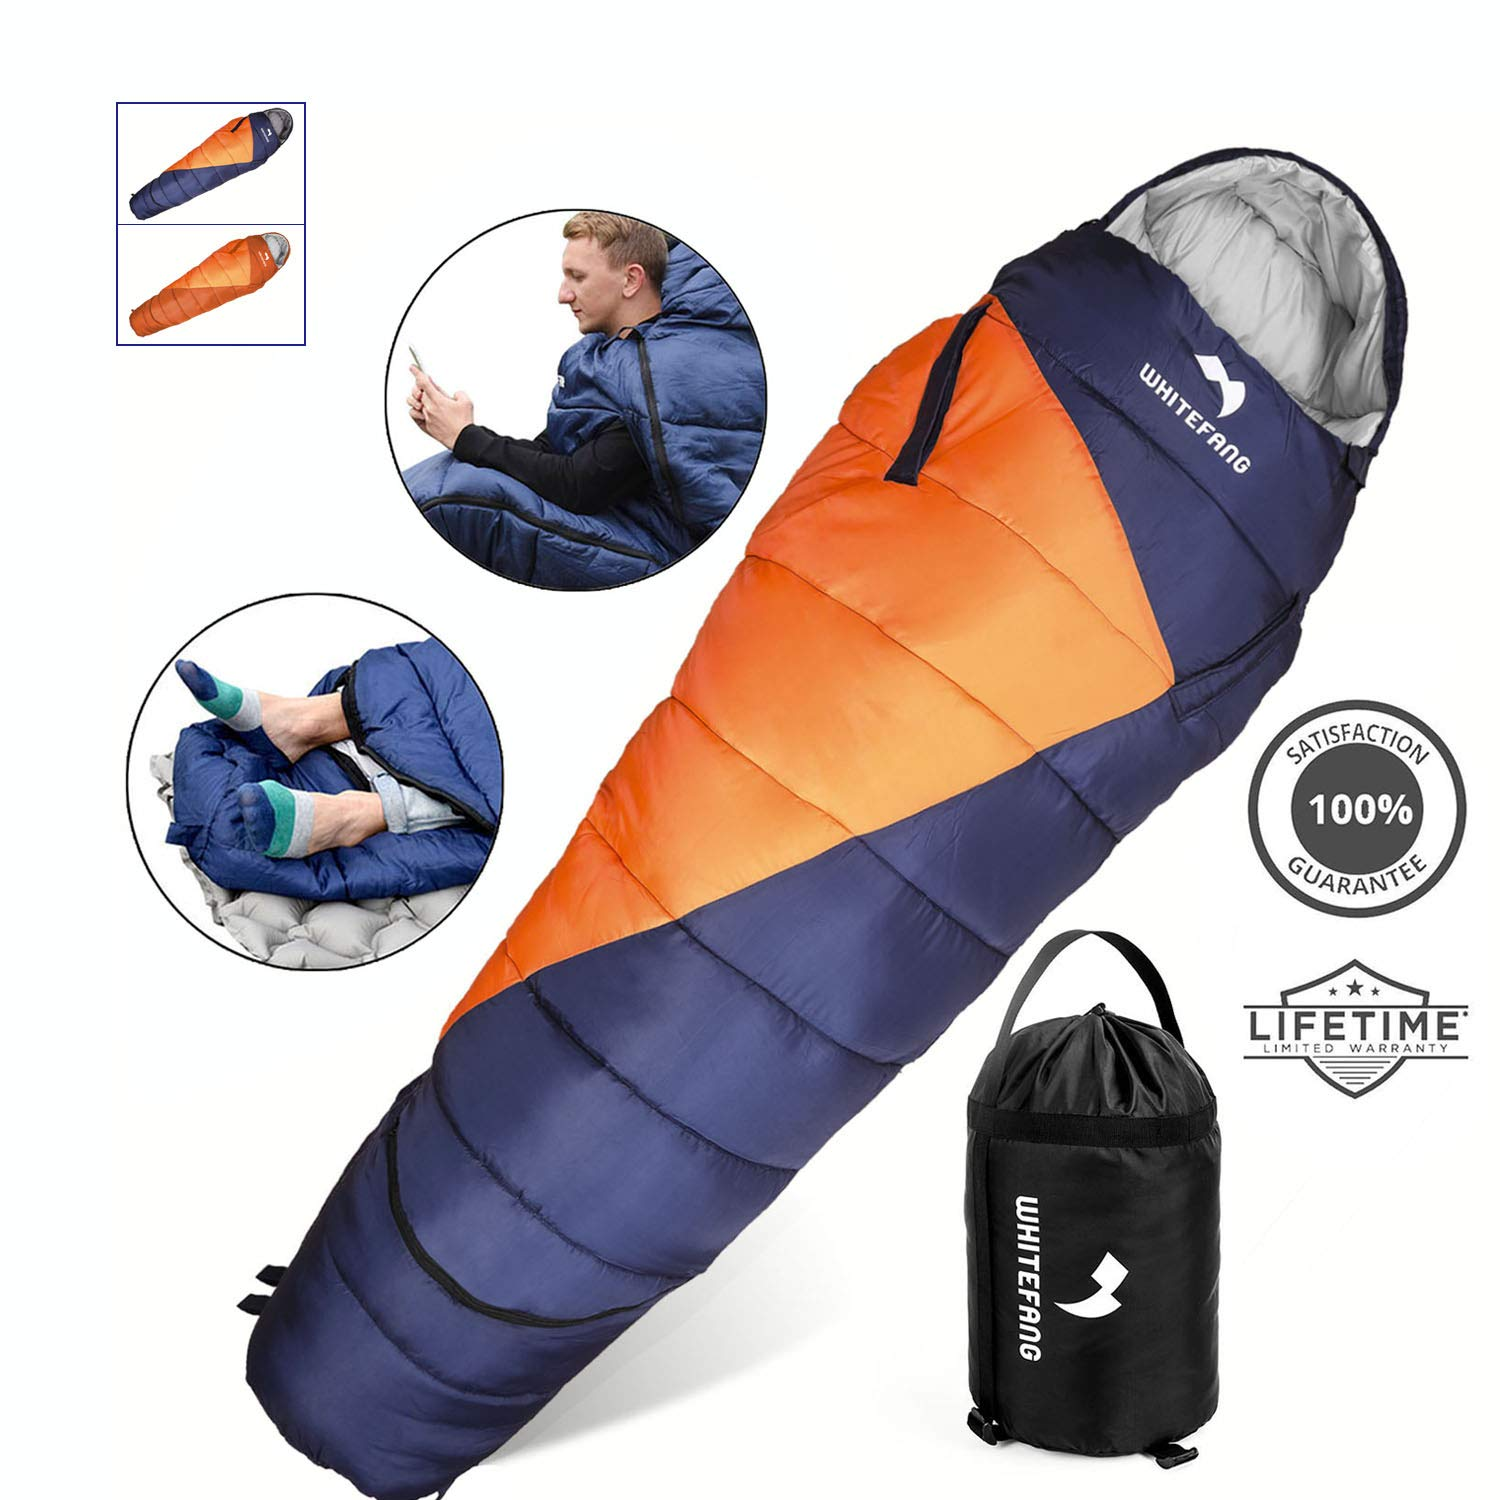 WhiteFang Sleeping Bag with Compression Sack,Wearable Portable Lightweight and Waterproof for Adults & Kids,3-4 Season Mummy Sleeping Bags Great for Hiking, Backpacking,Camping and Outdoor by WhiteFang